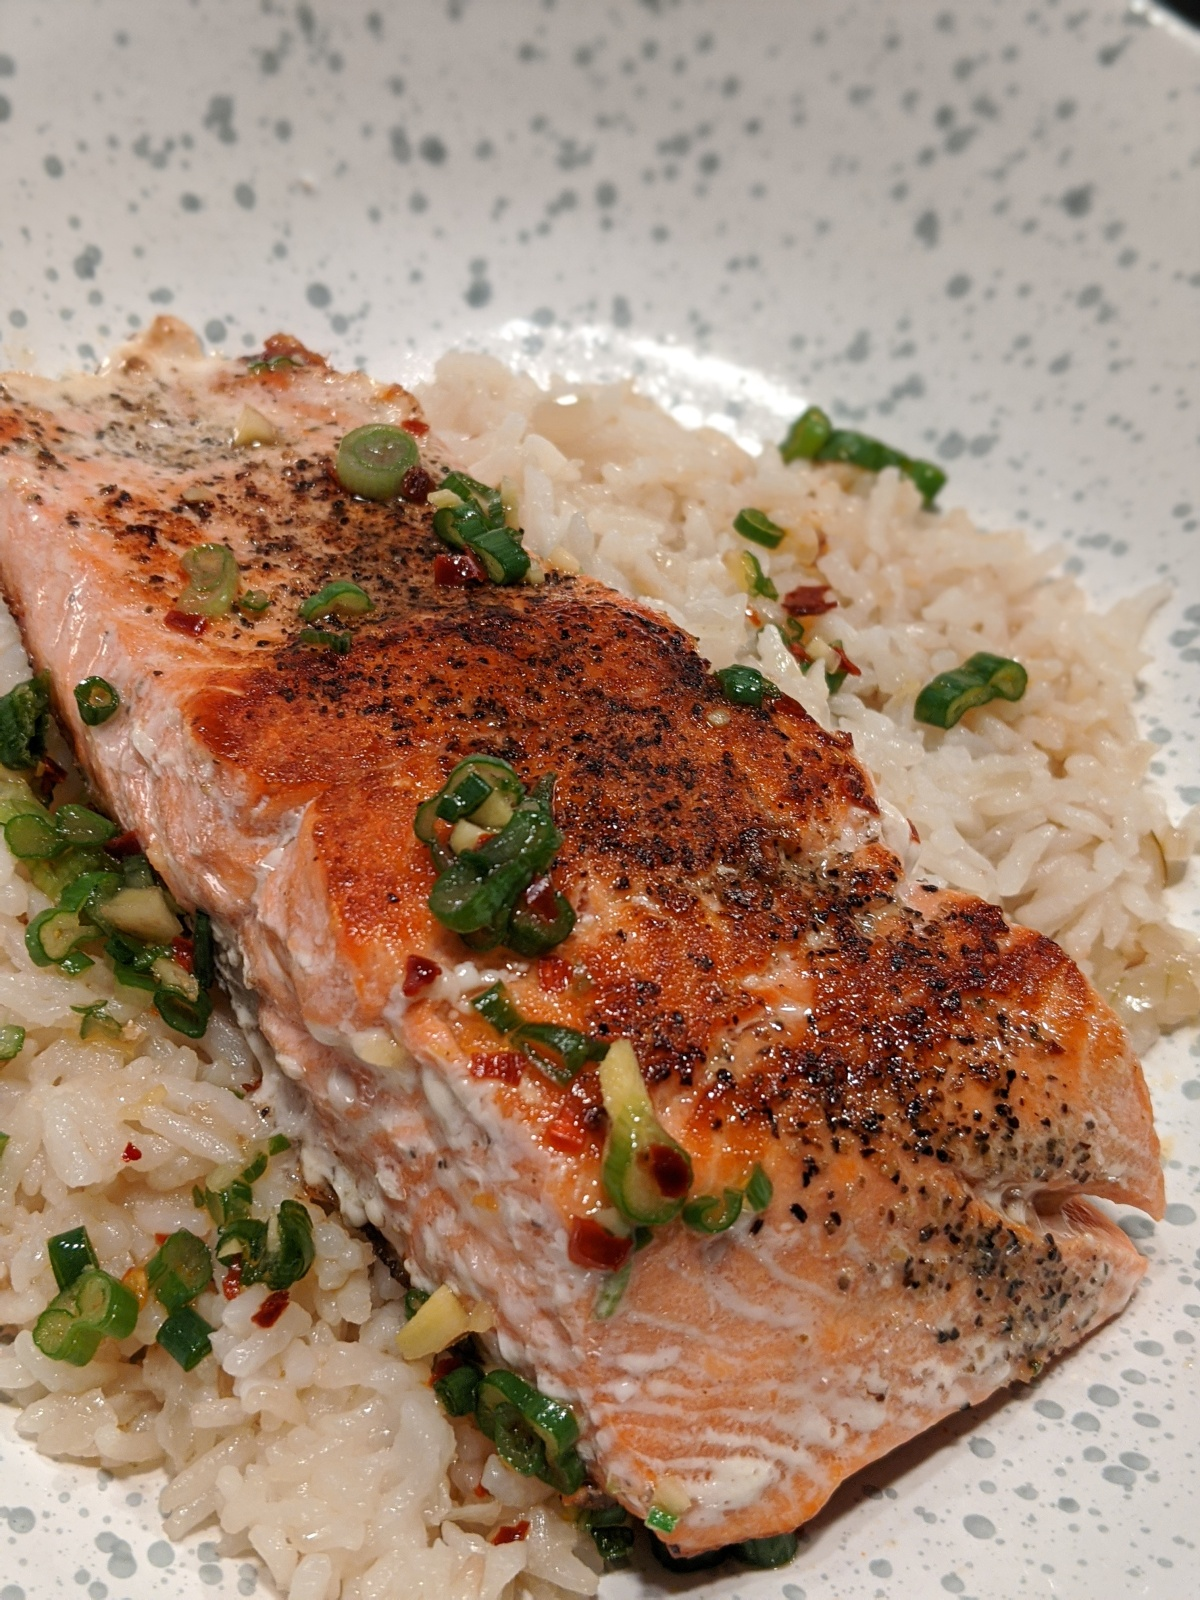 Cherryblossom Salmon with Coconut GingerRice